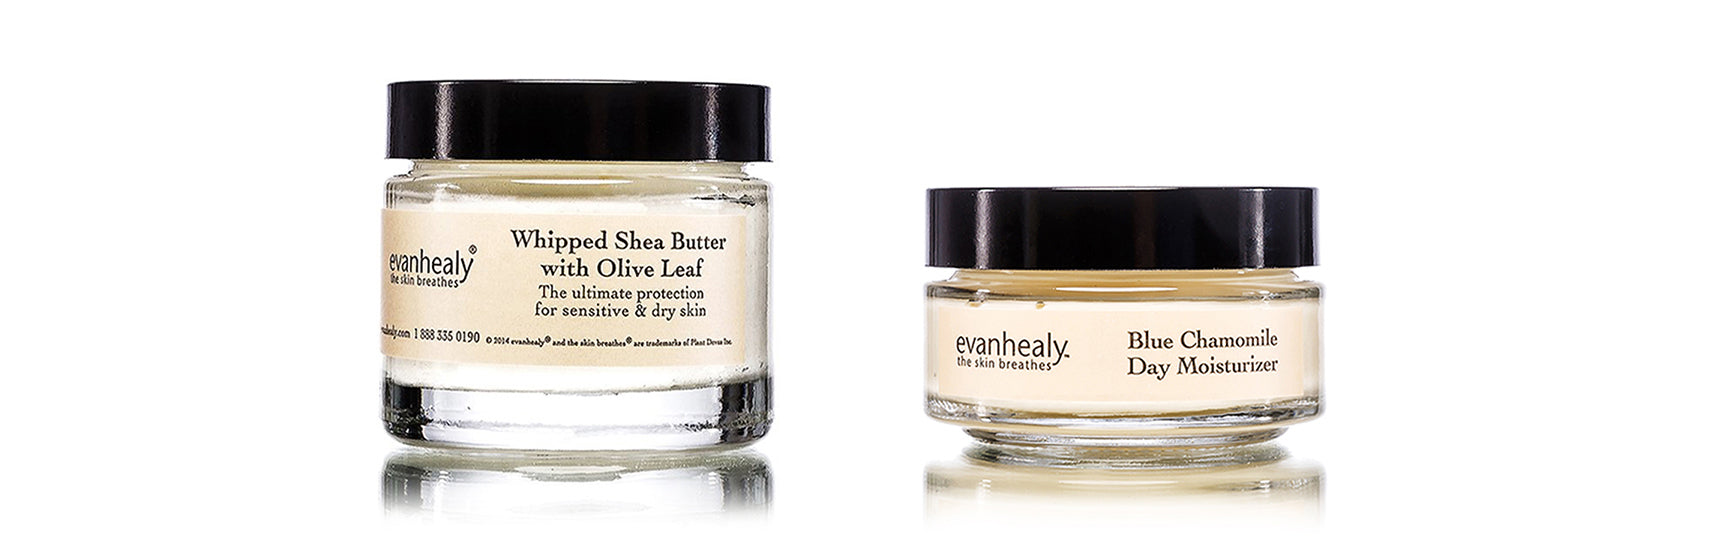 evanhealy Whipped Shea Butter with Olive Leaf and Blue Chamomile Day Moisturizer